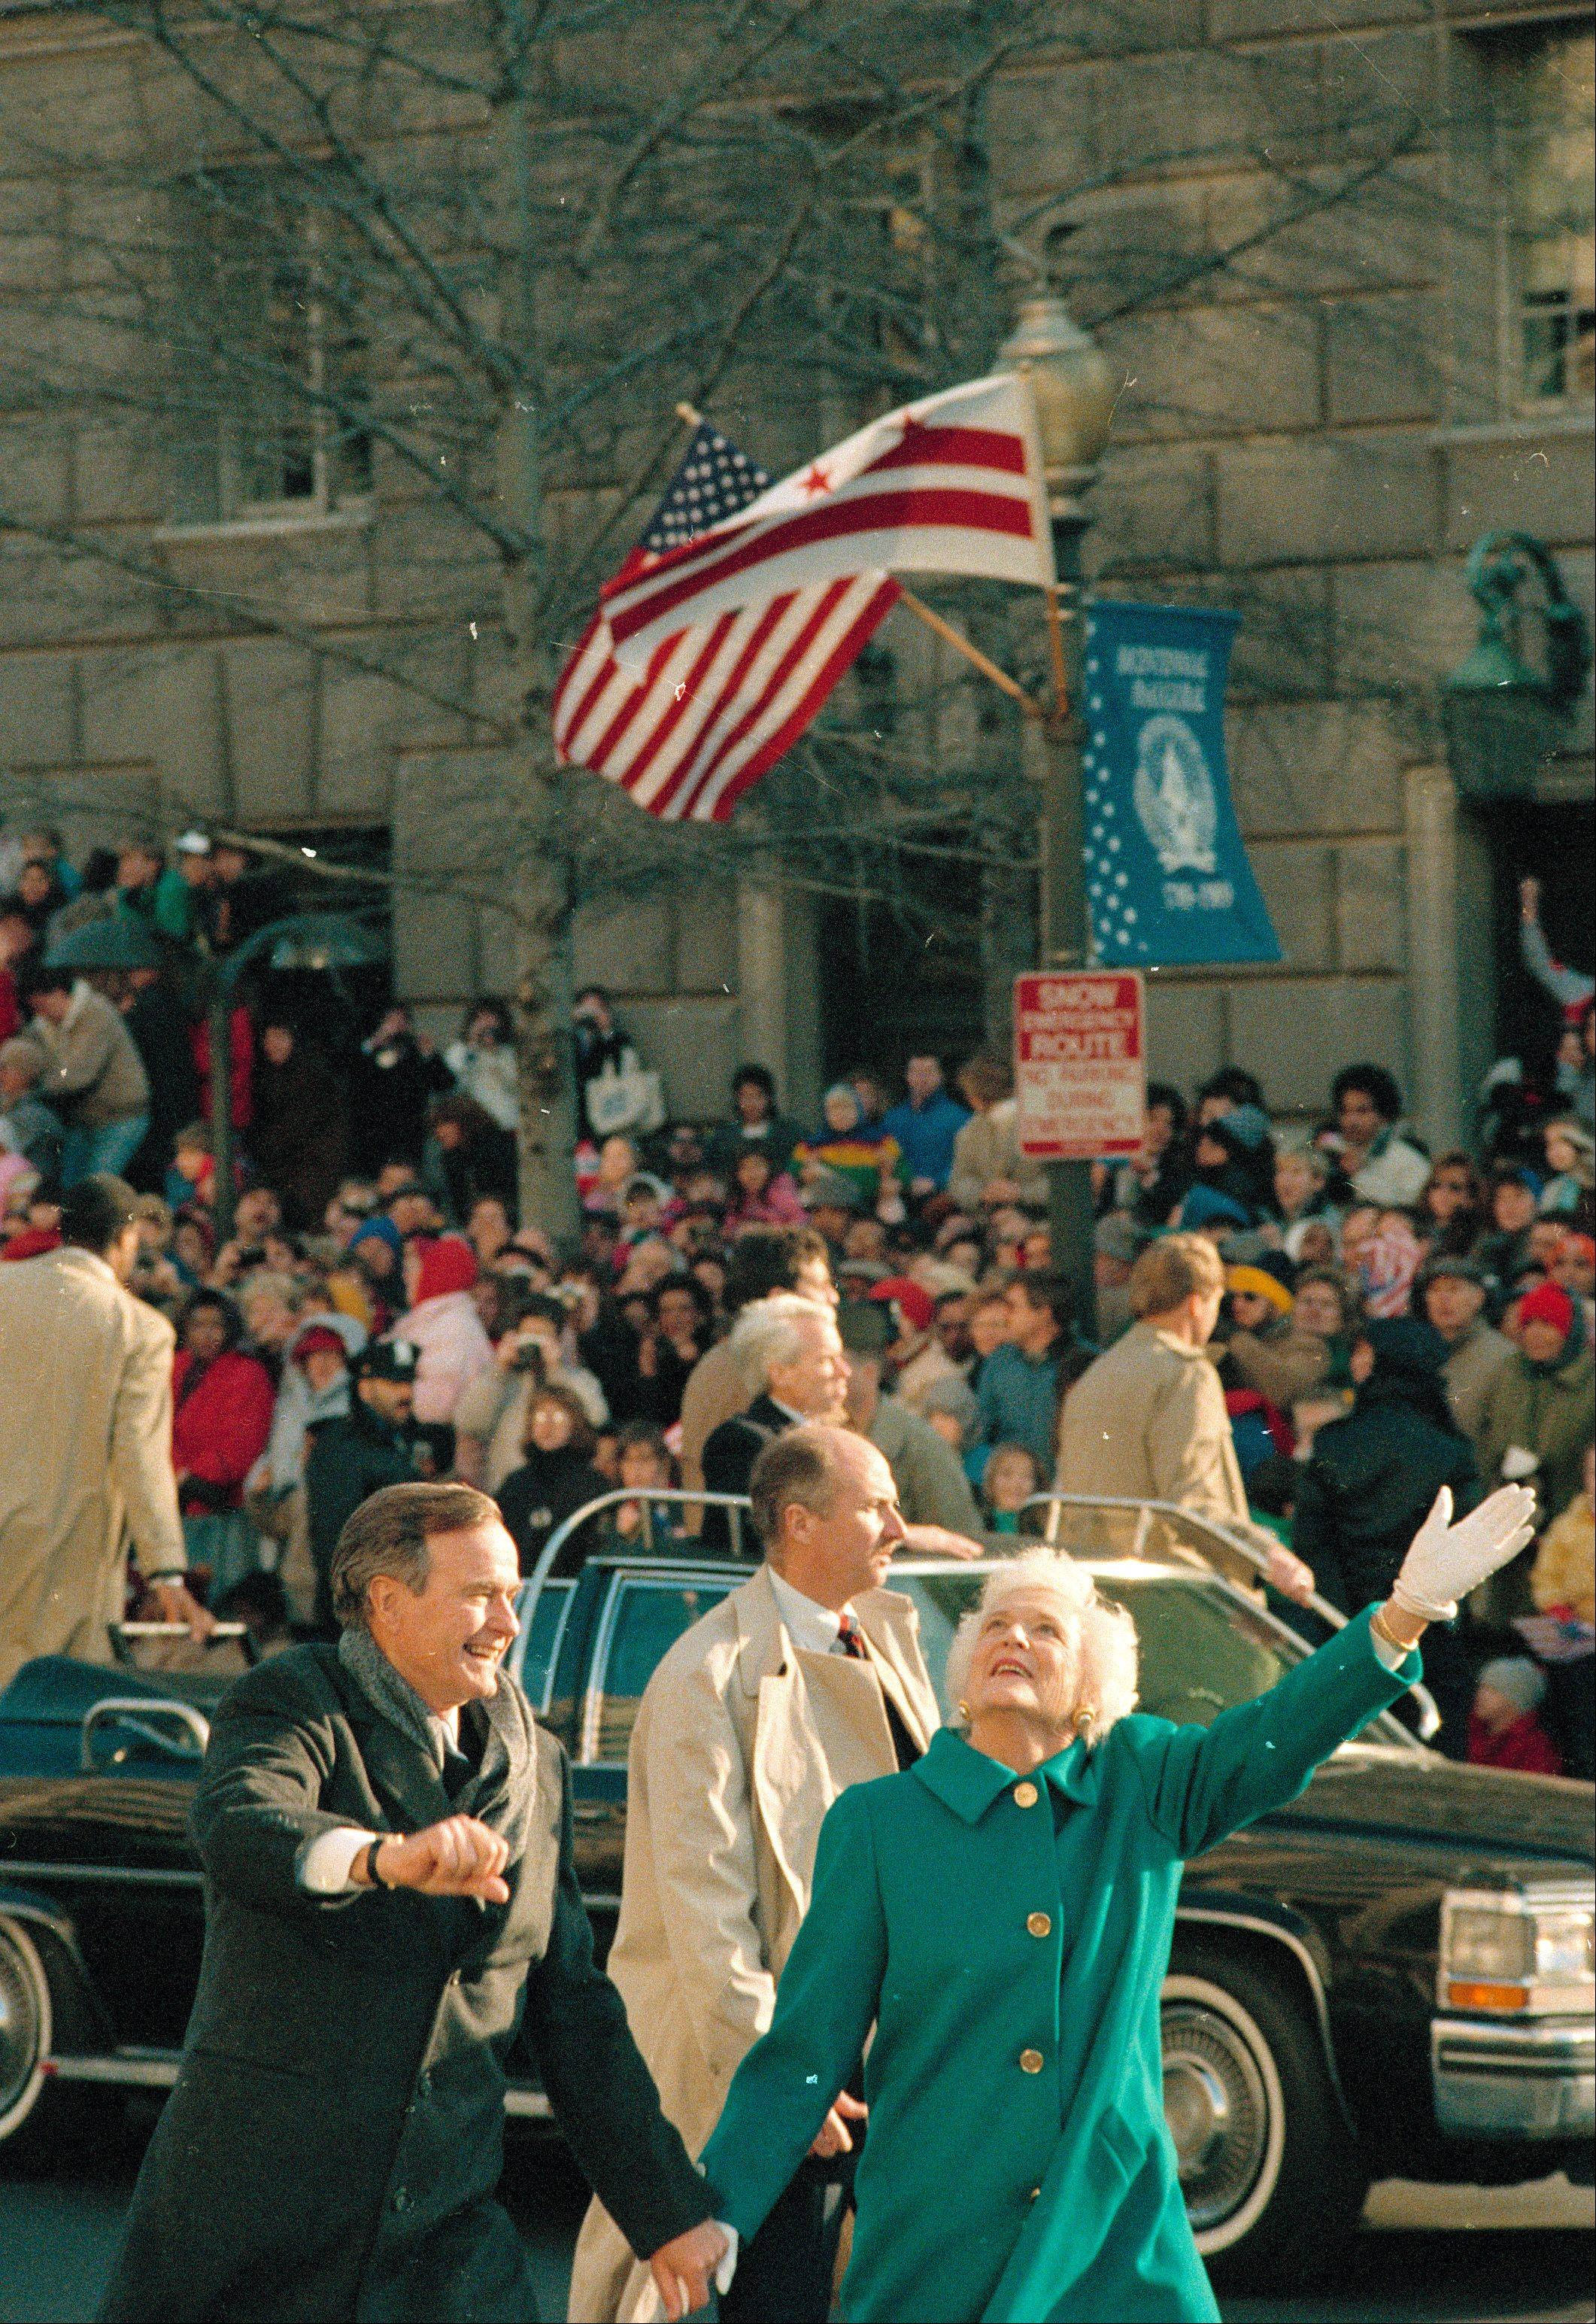 President George Bush, left, and his wife, first lady Barbara Bush, wave to the crowd on Pennsylvania Avenue after getting out of their limousine and walking the inaugural parade route in Washington, D.C., Friday, Jan. 20, 1989.